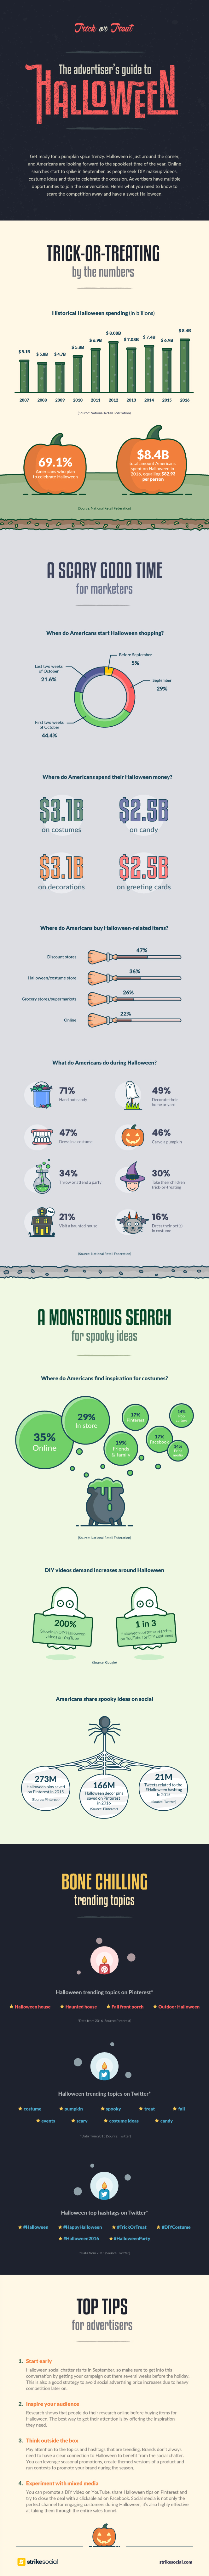 Infographic - Digital Advertiser's Guide to Halloween